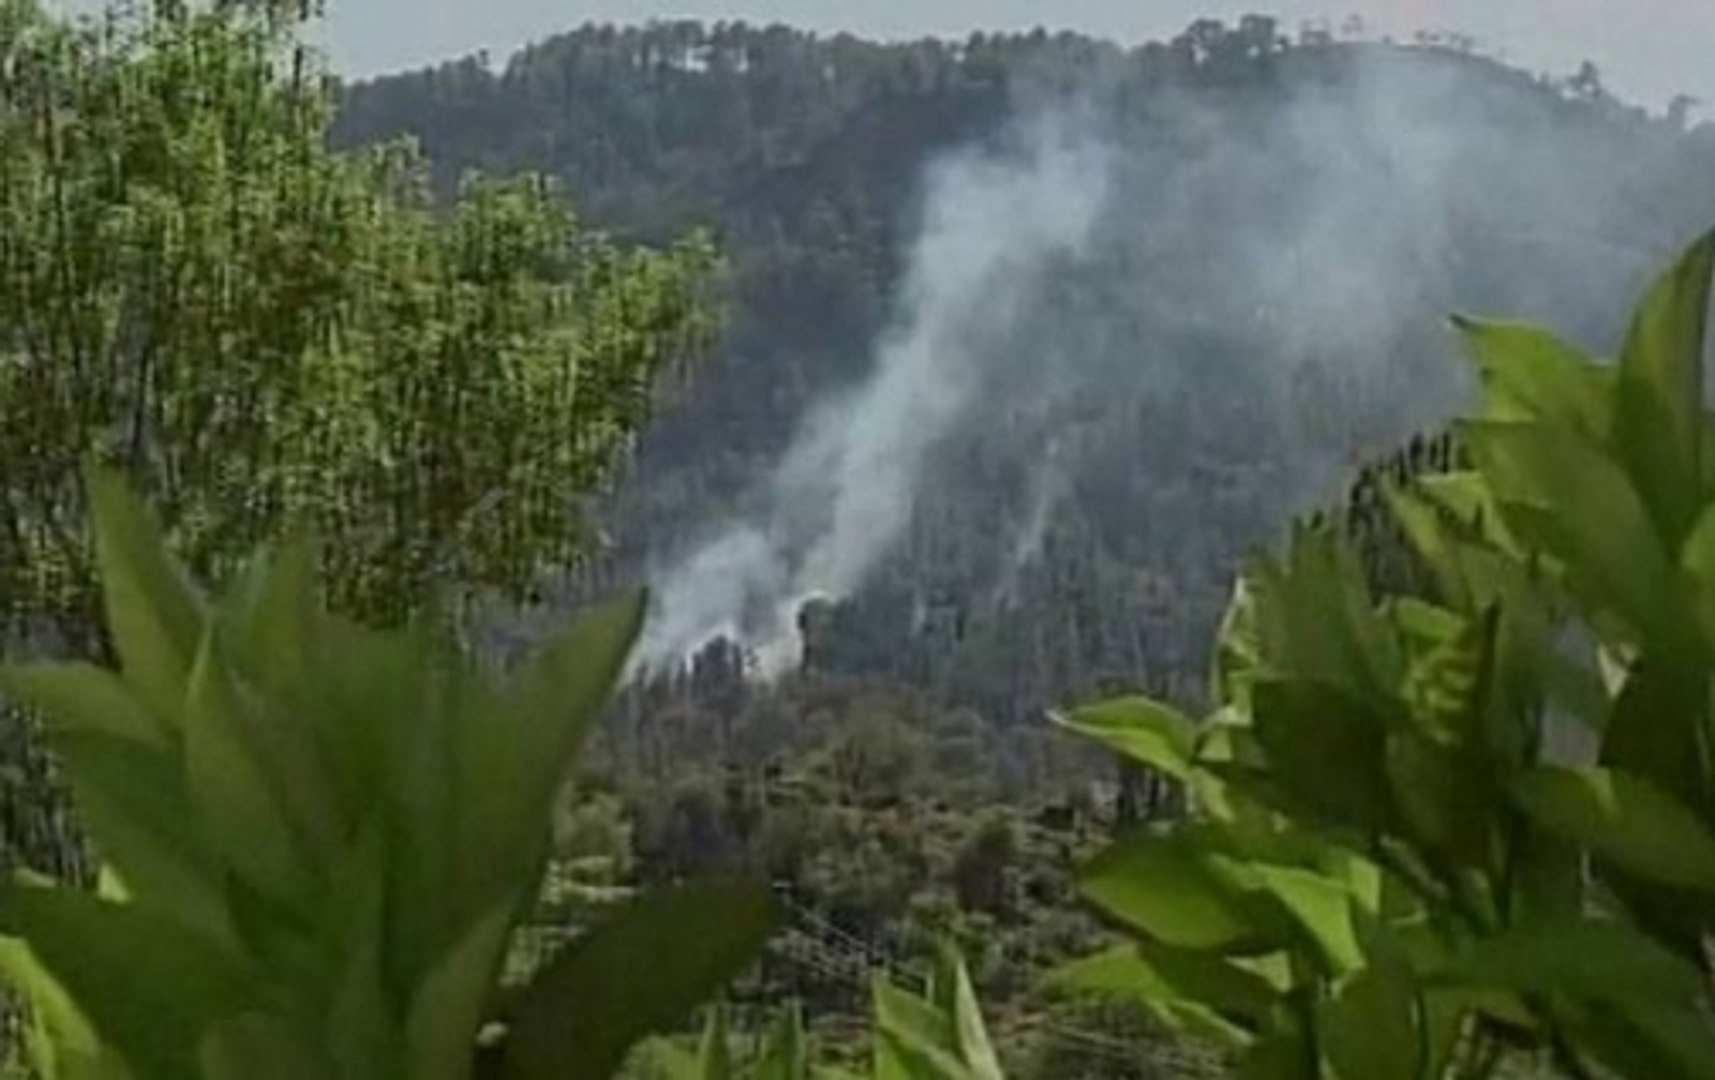 Speed News: Pakistan violates ceasefire along LoC in Nowshera, Krishna Ghati